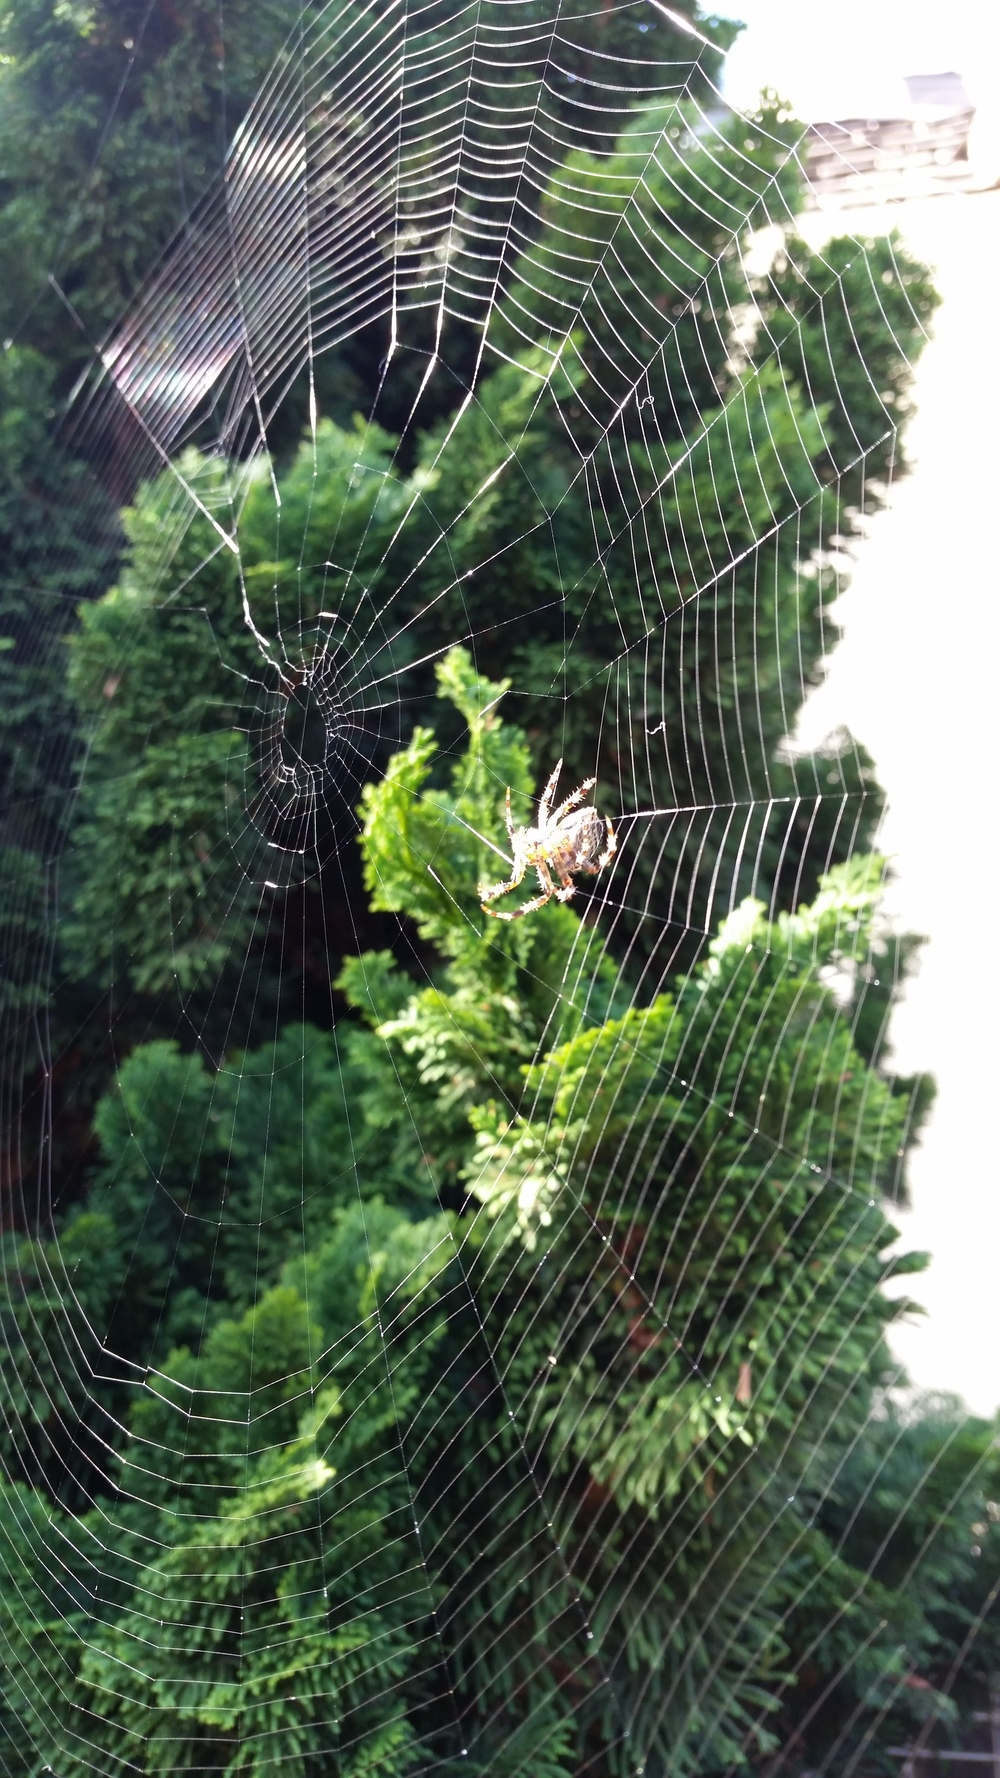 A spider making a web on my daily walk to class.